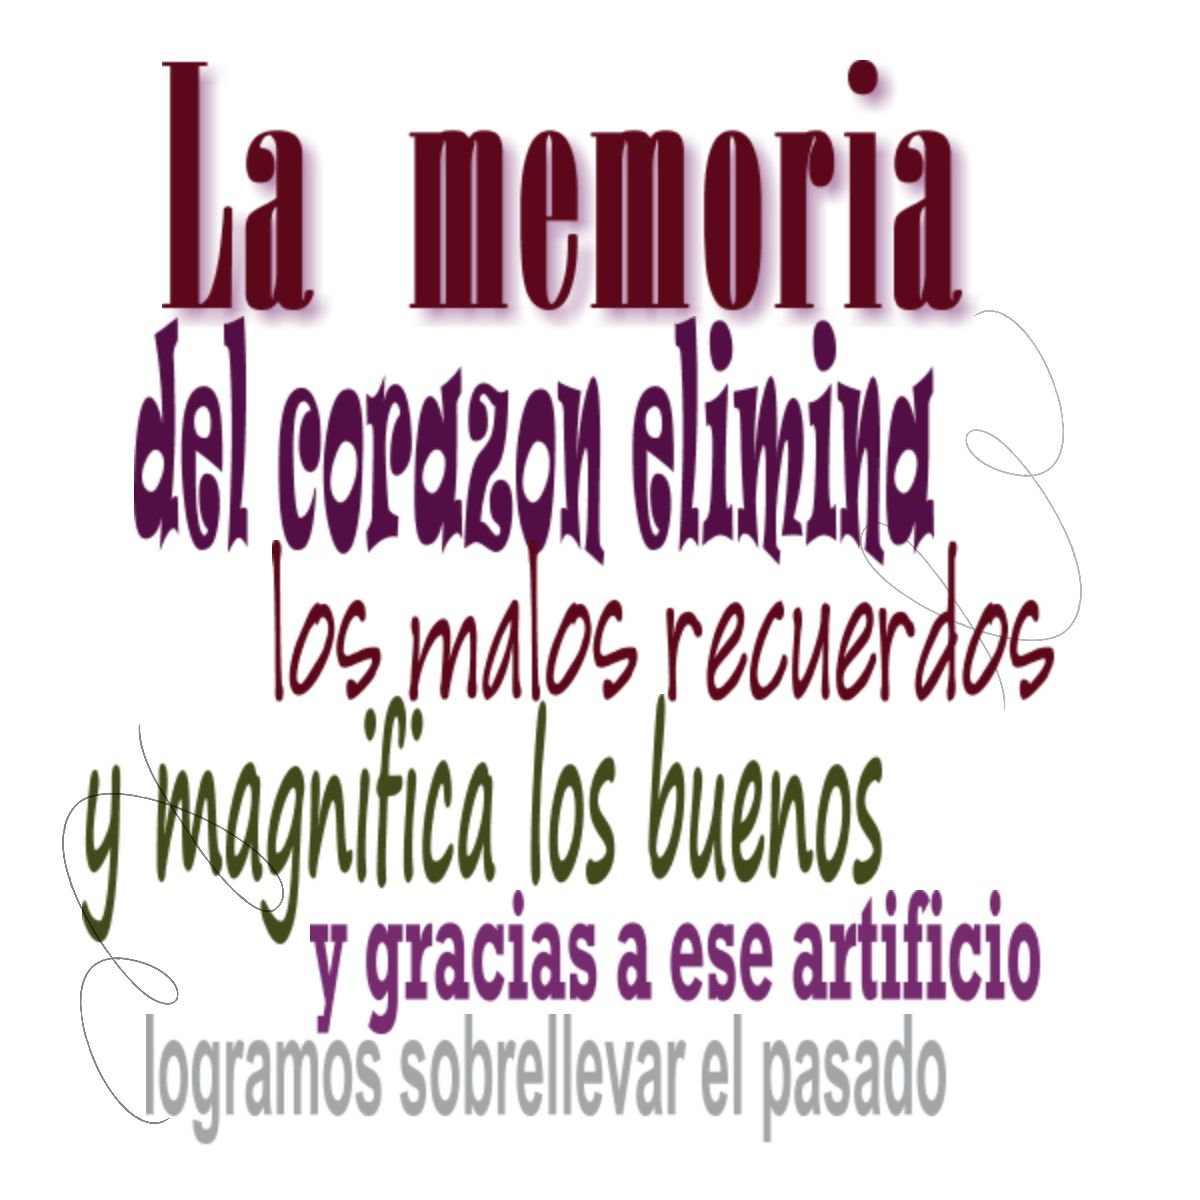 Here S A Printable I Made In Spanish Of One Of My Favorite Quotes